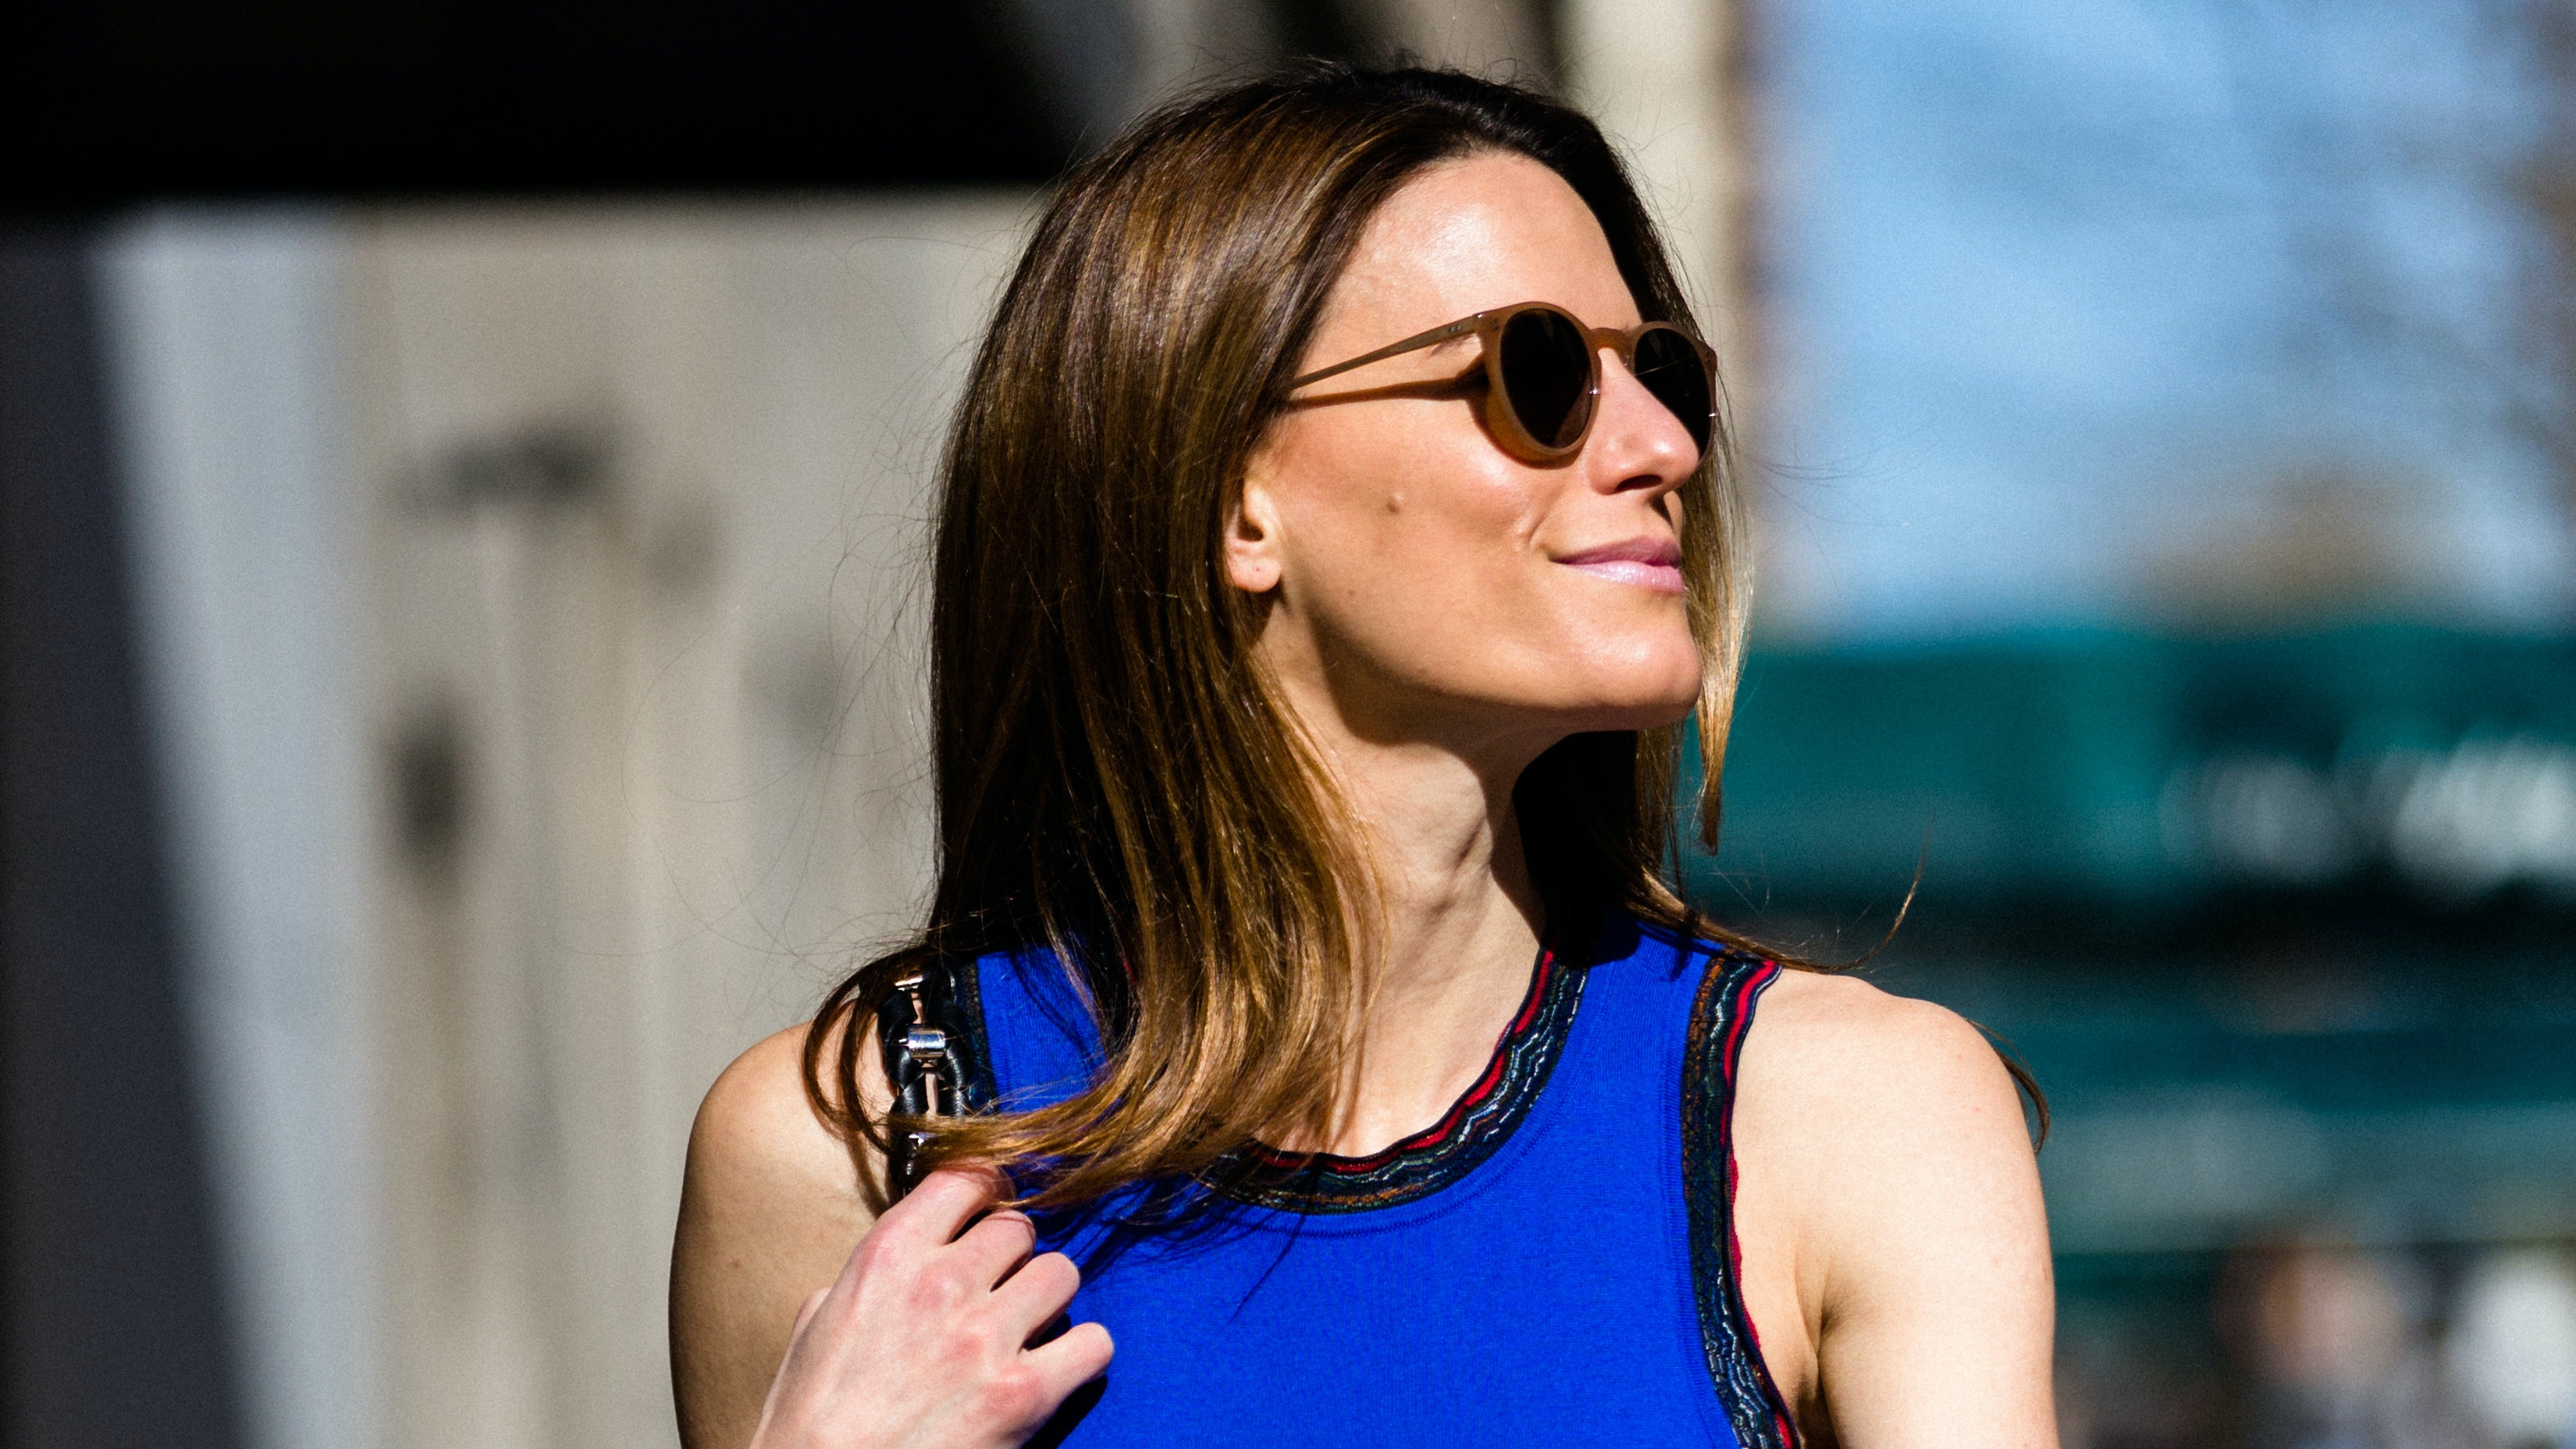 Fashion Expert Brooke Jaffe Shares Her Secrets to Industry Success and Glowing Skin